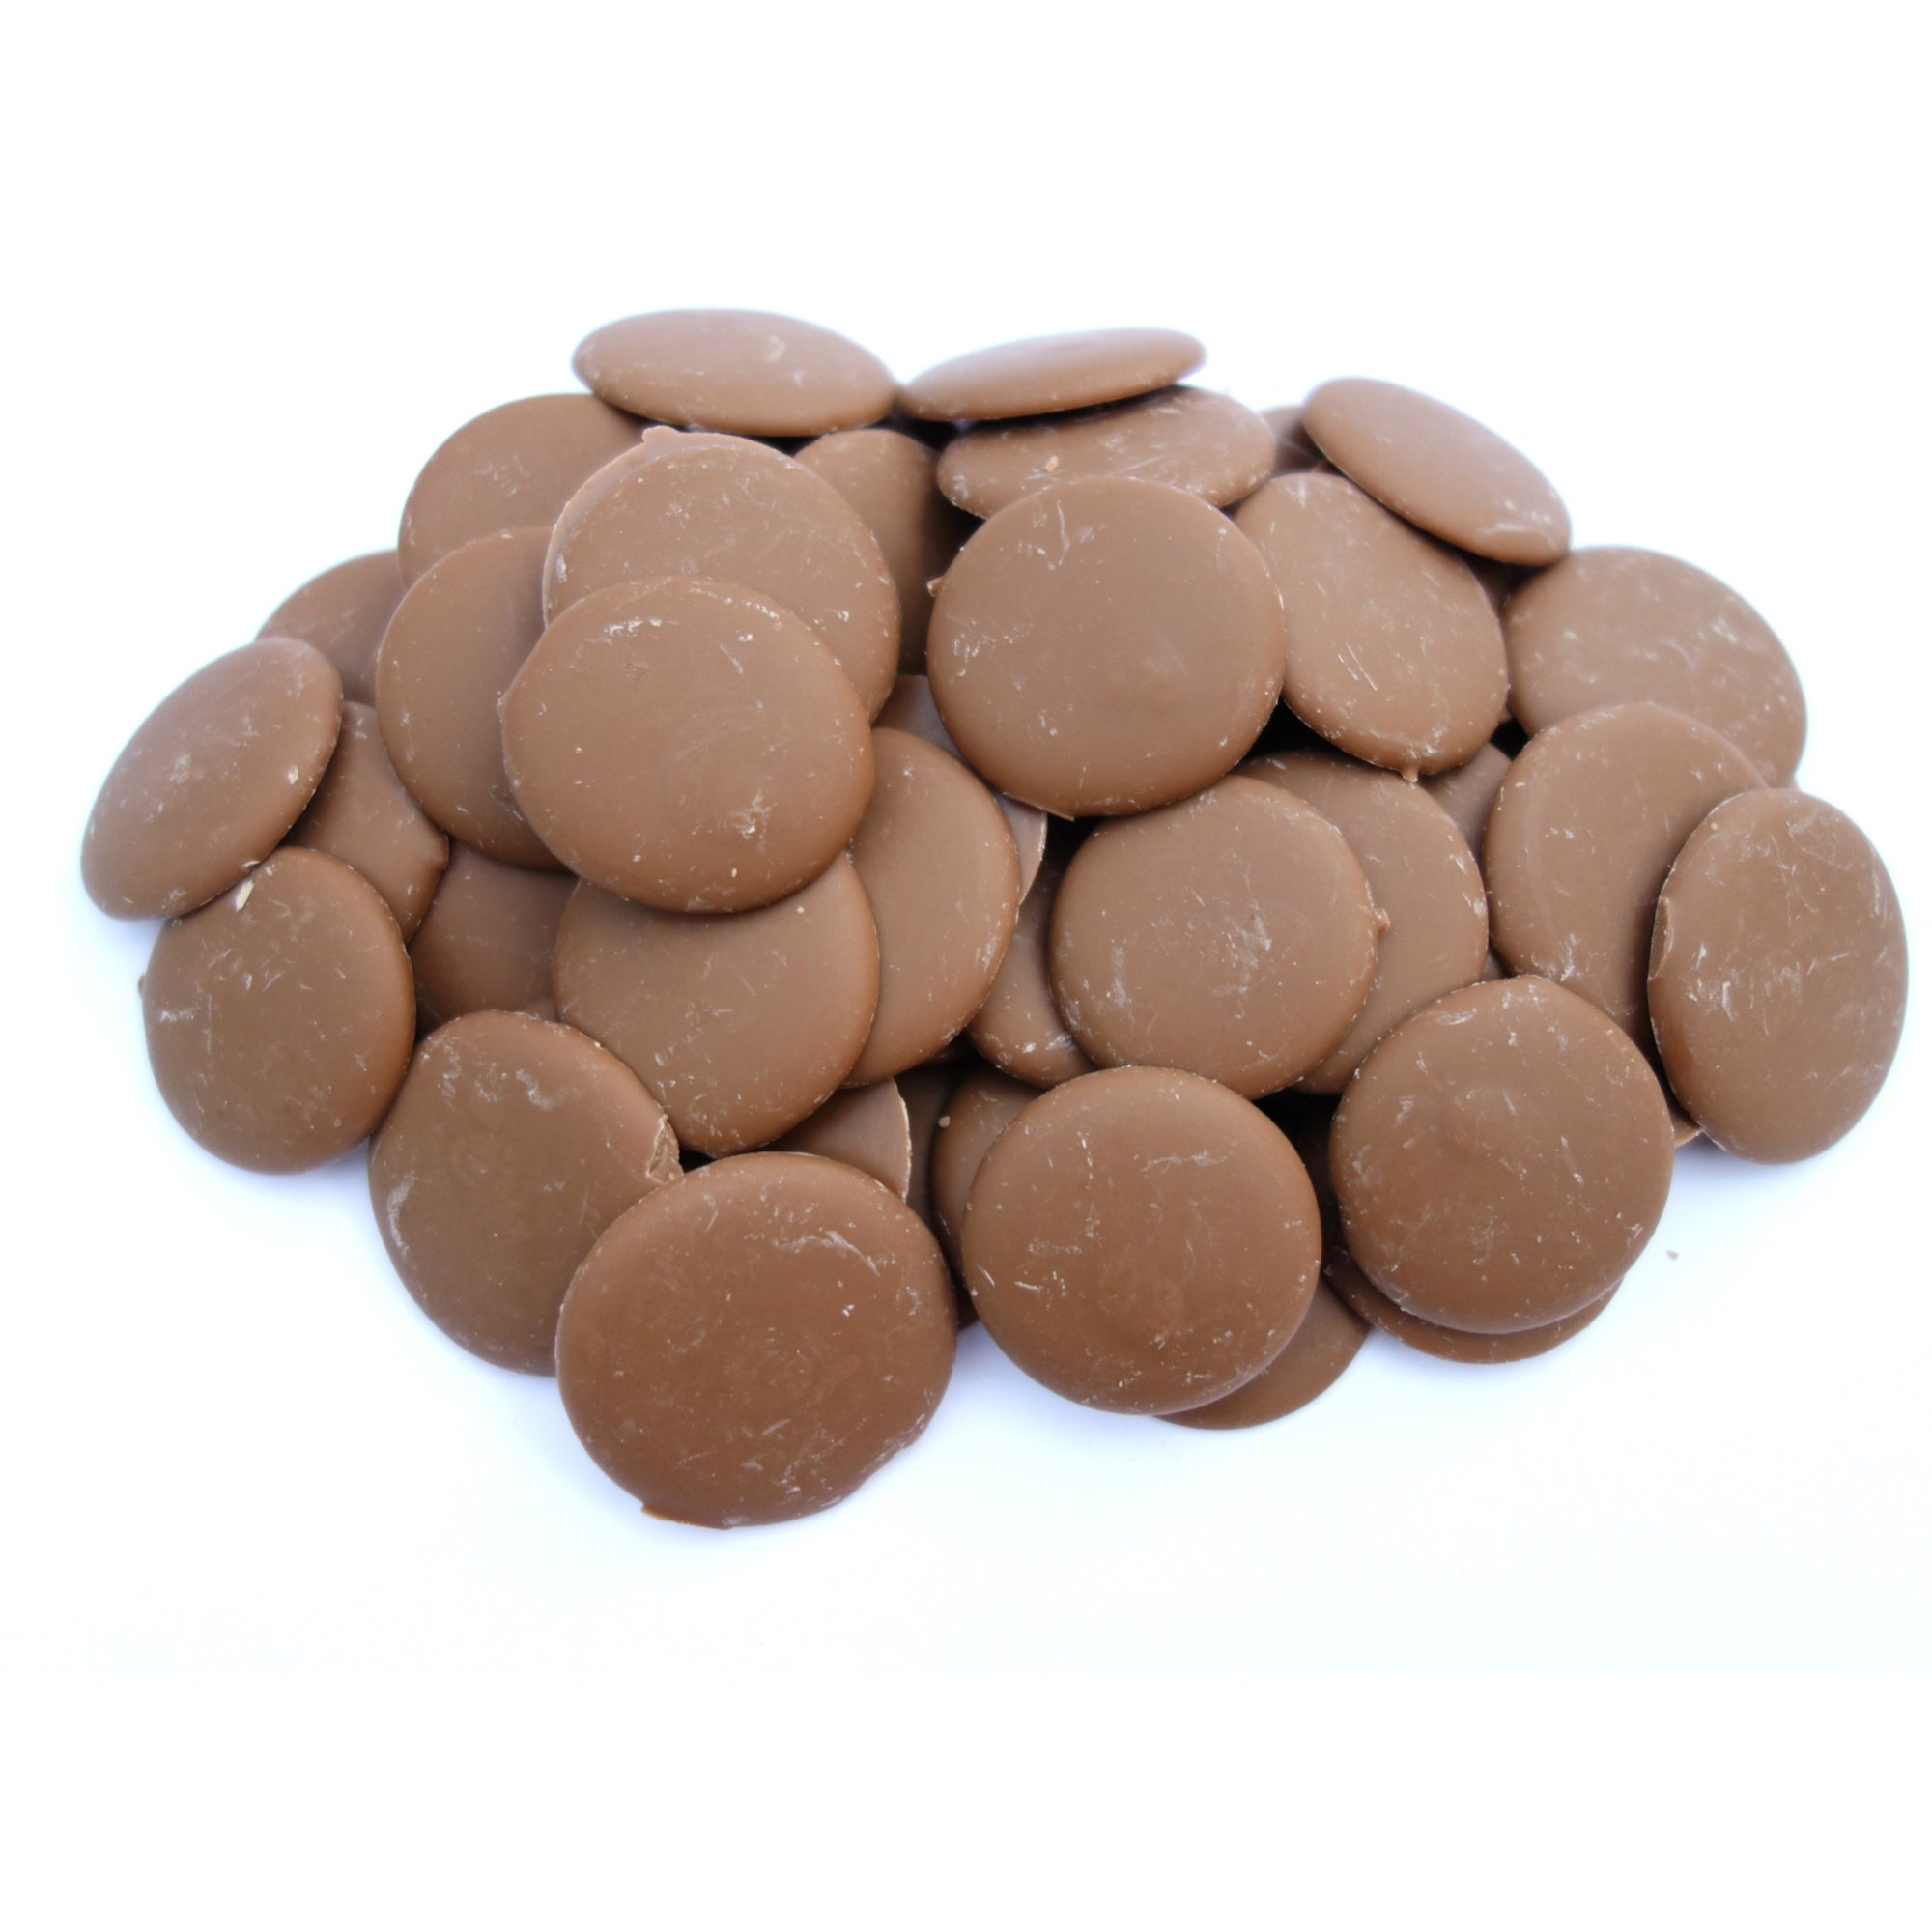 Vanoffee Chocolate Buttons 1kg - The Raw Chocolate Company